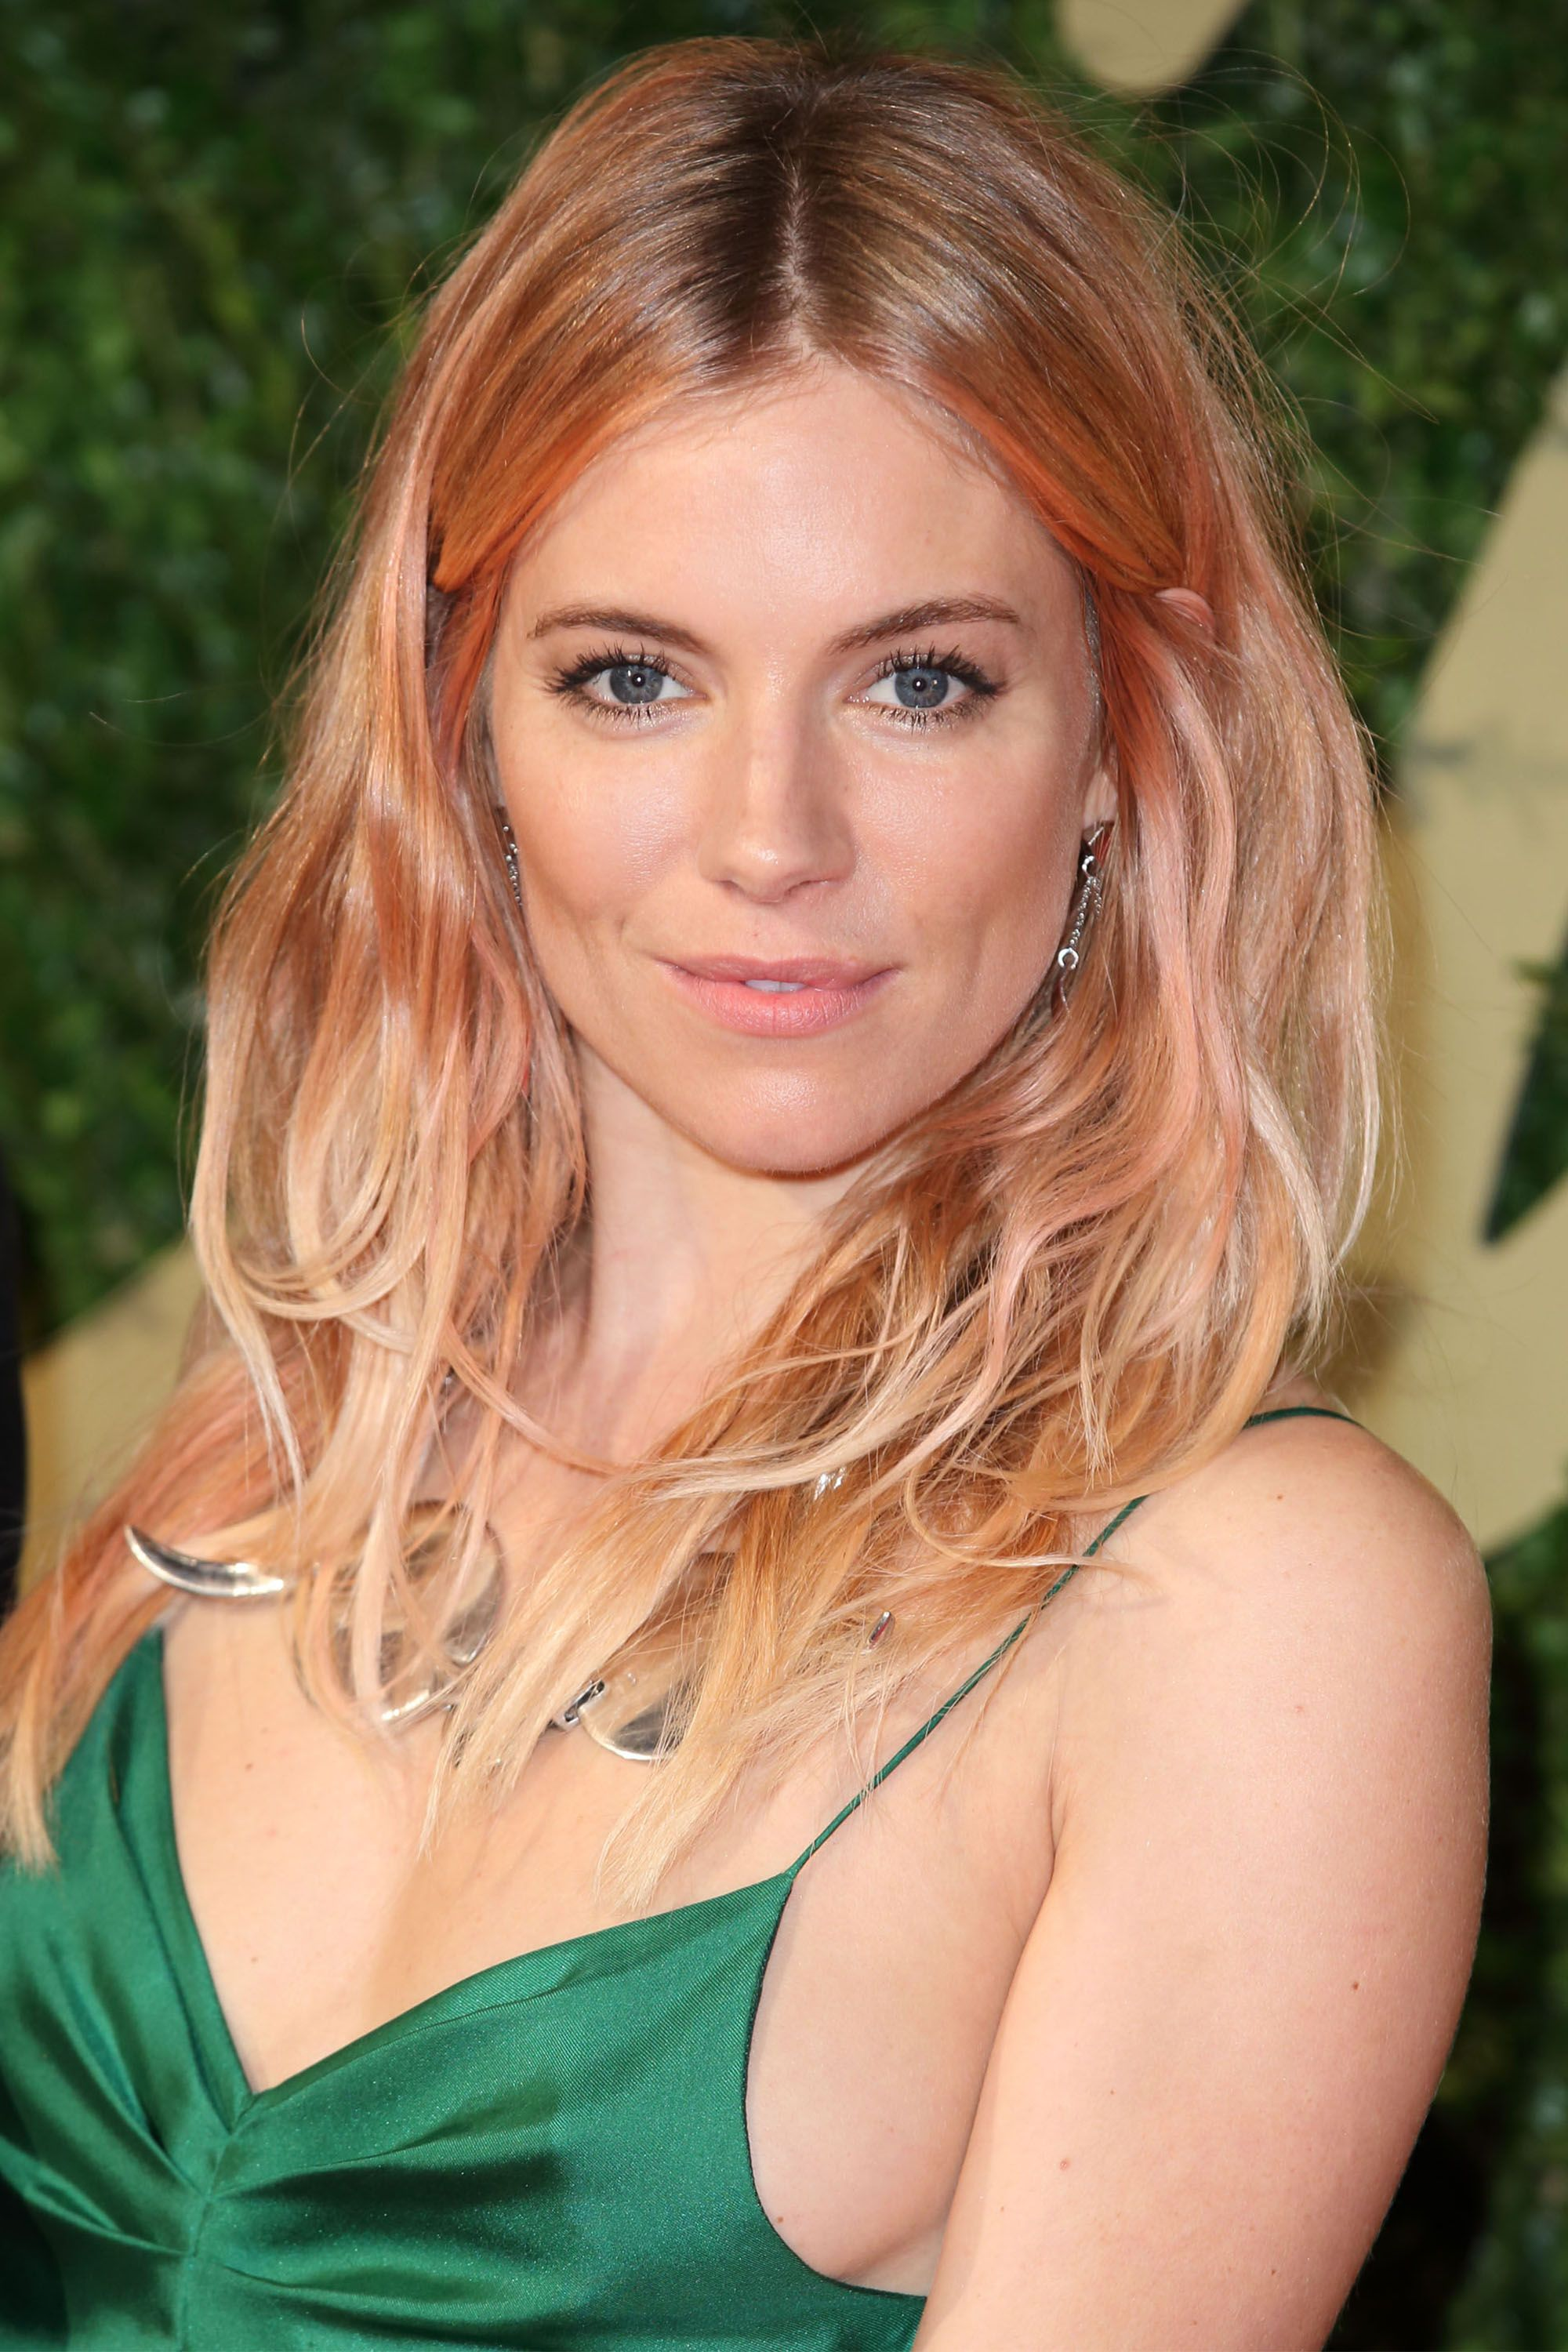 "<p>Sienna Miller shows off her rock n' roll side with a rose gold hue heavier at the crown. ""It brightens up her face to the point where she needs minimal makeup,"" says Brown.&nbsp&#x3B;</p><p><span class=""redactor-invisible-space"" data-verified=""redactor"" data-redactor-tag=""span"" data-redactor-class=""redactor-invisible-space""></span></p>"